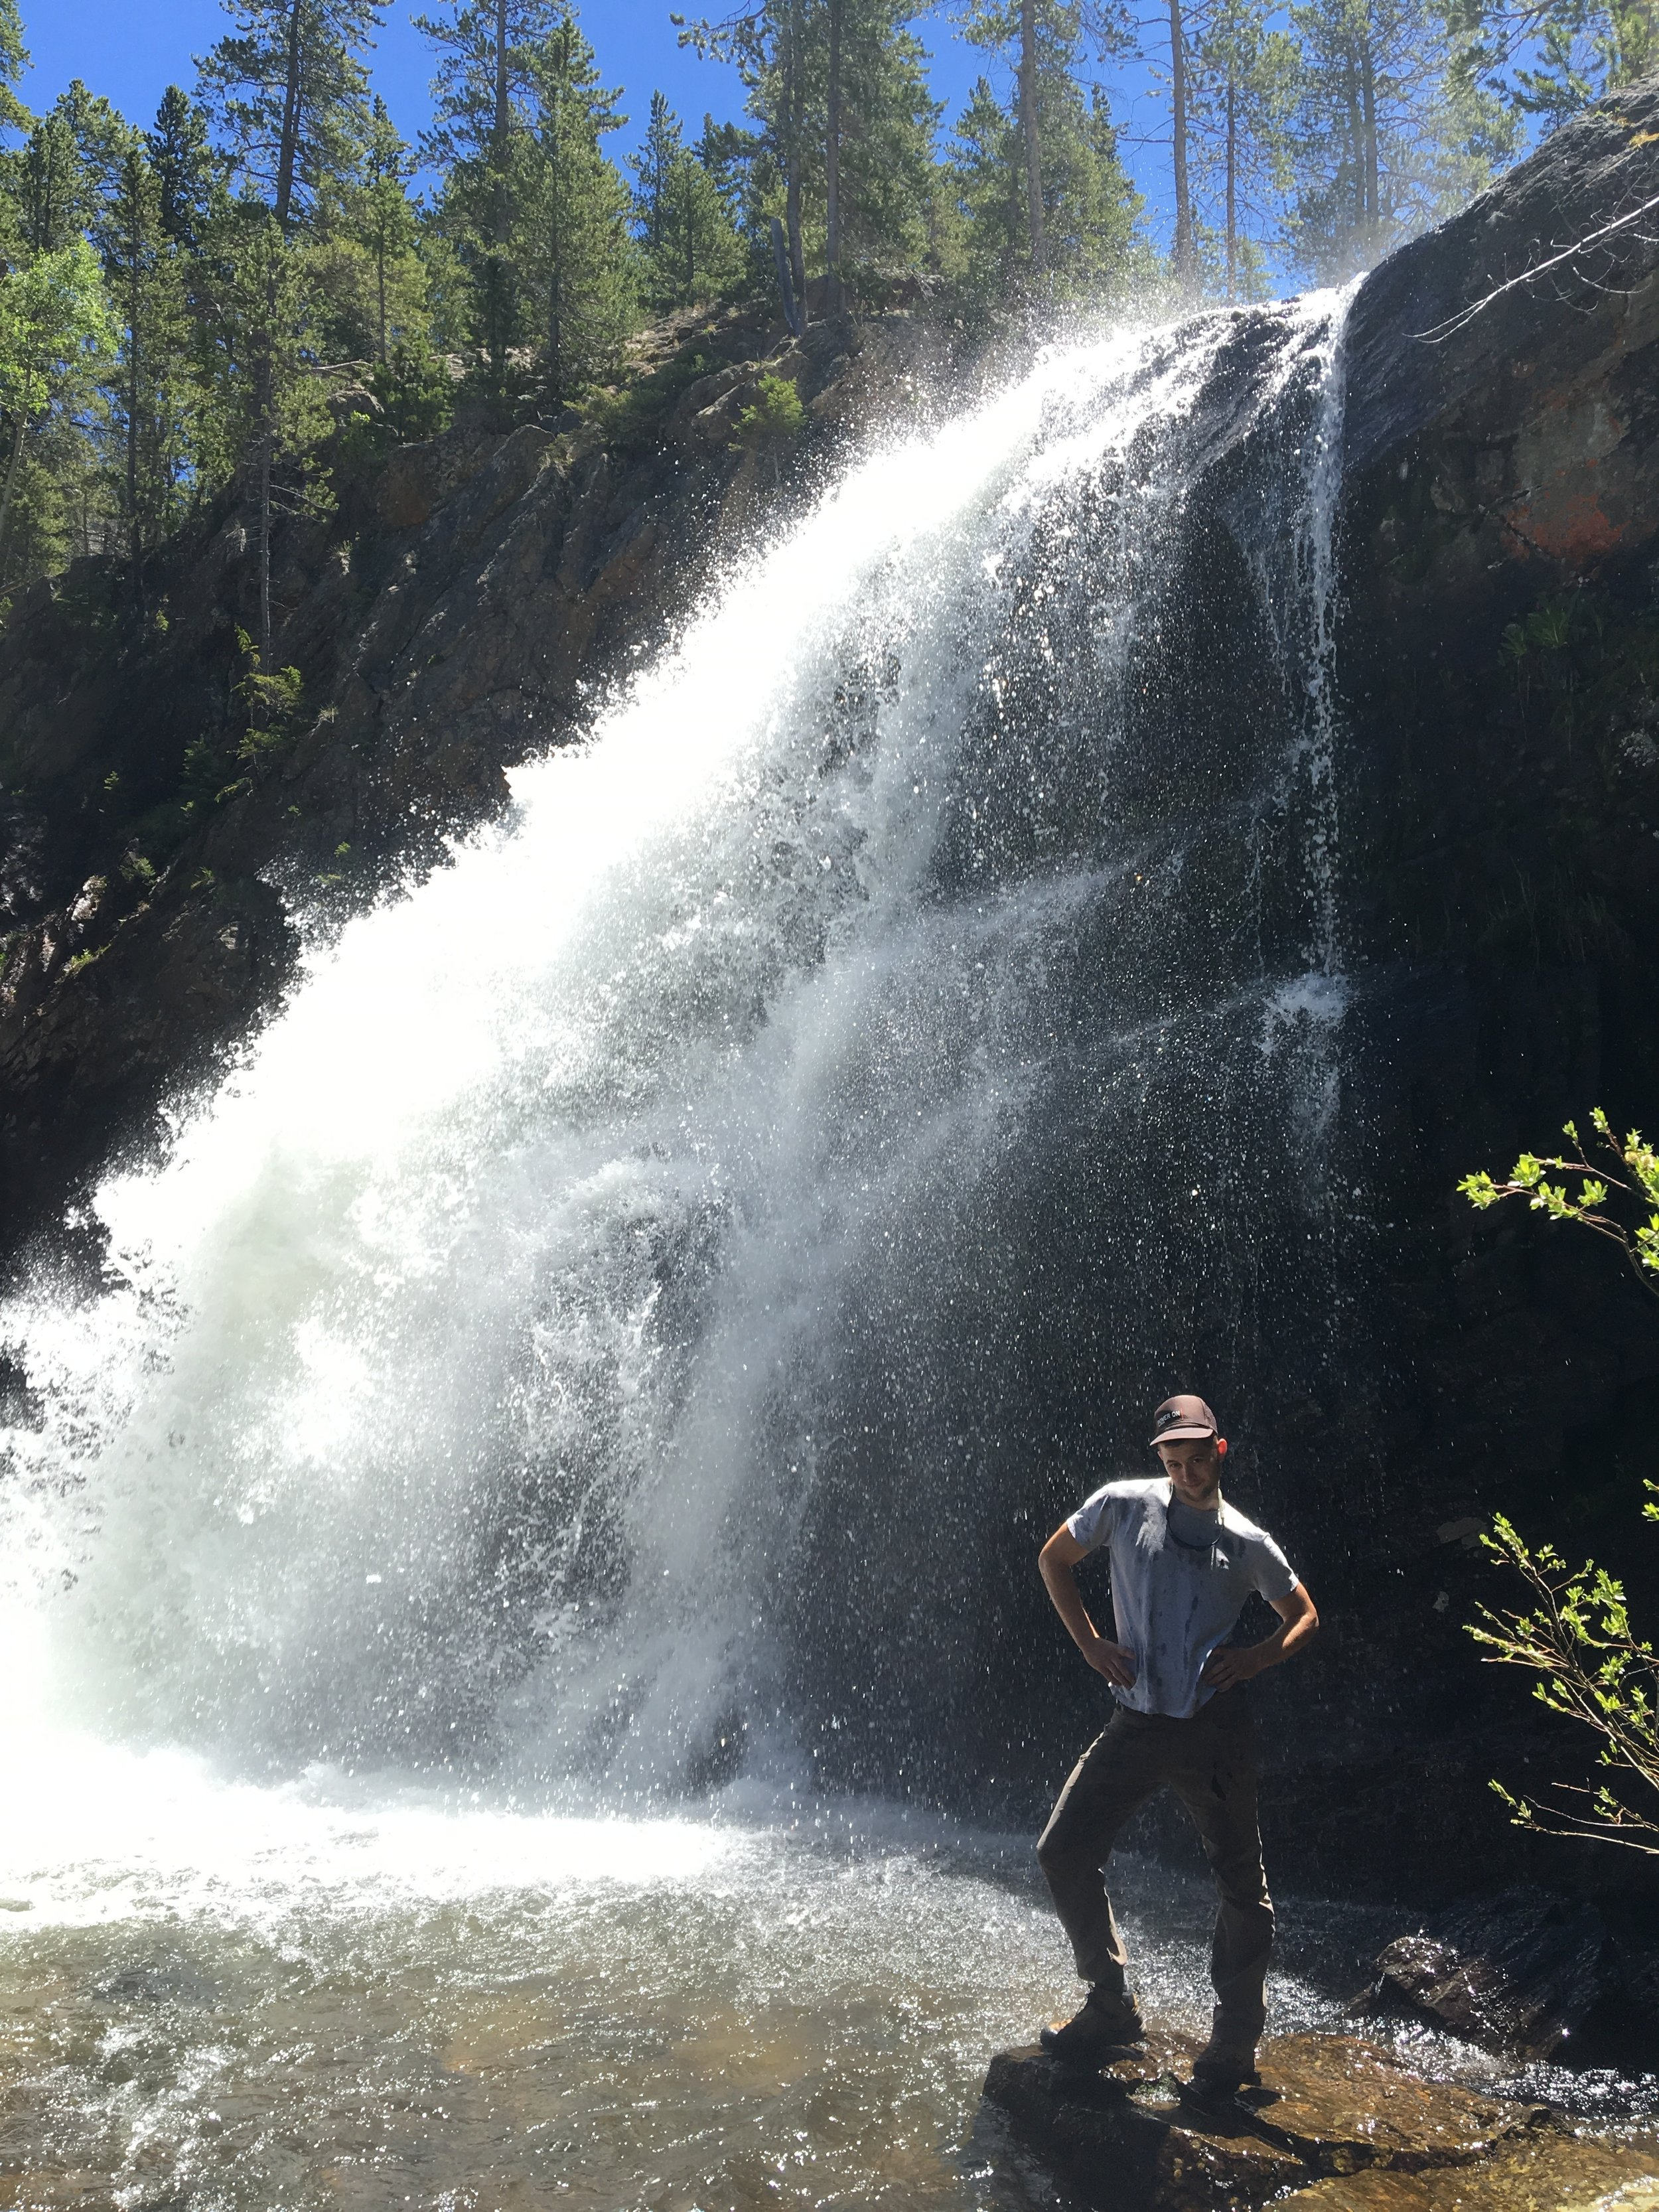 Lots o waterfalls for Brent to pose with.